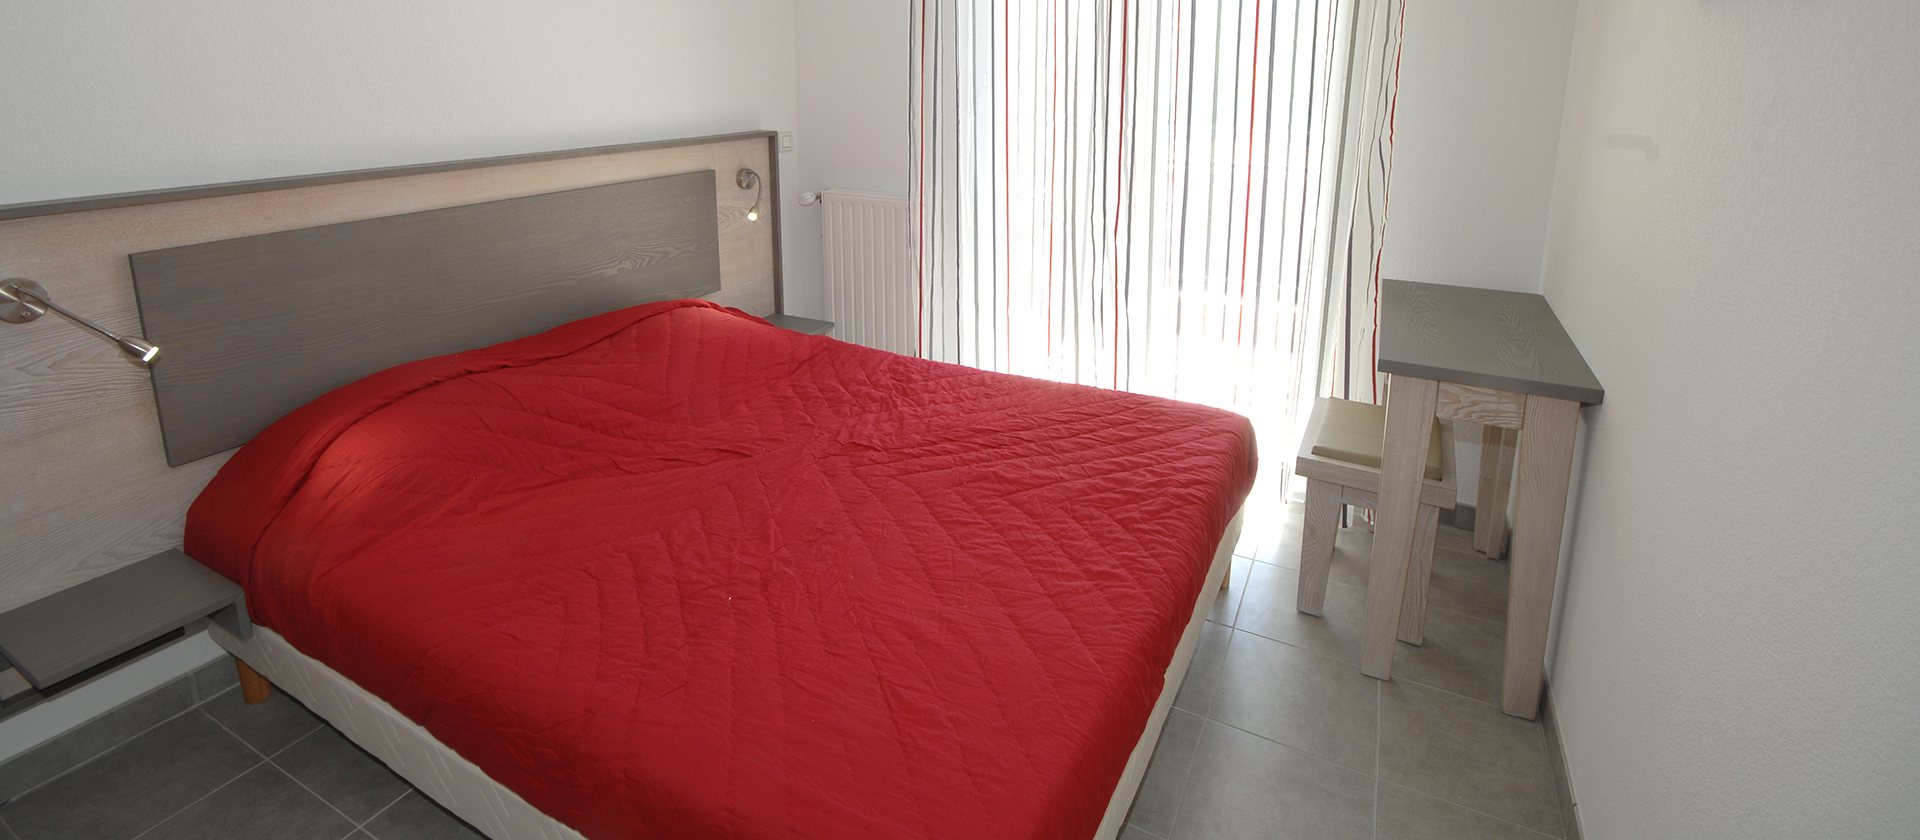 chambre_hotel.png